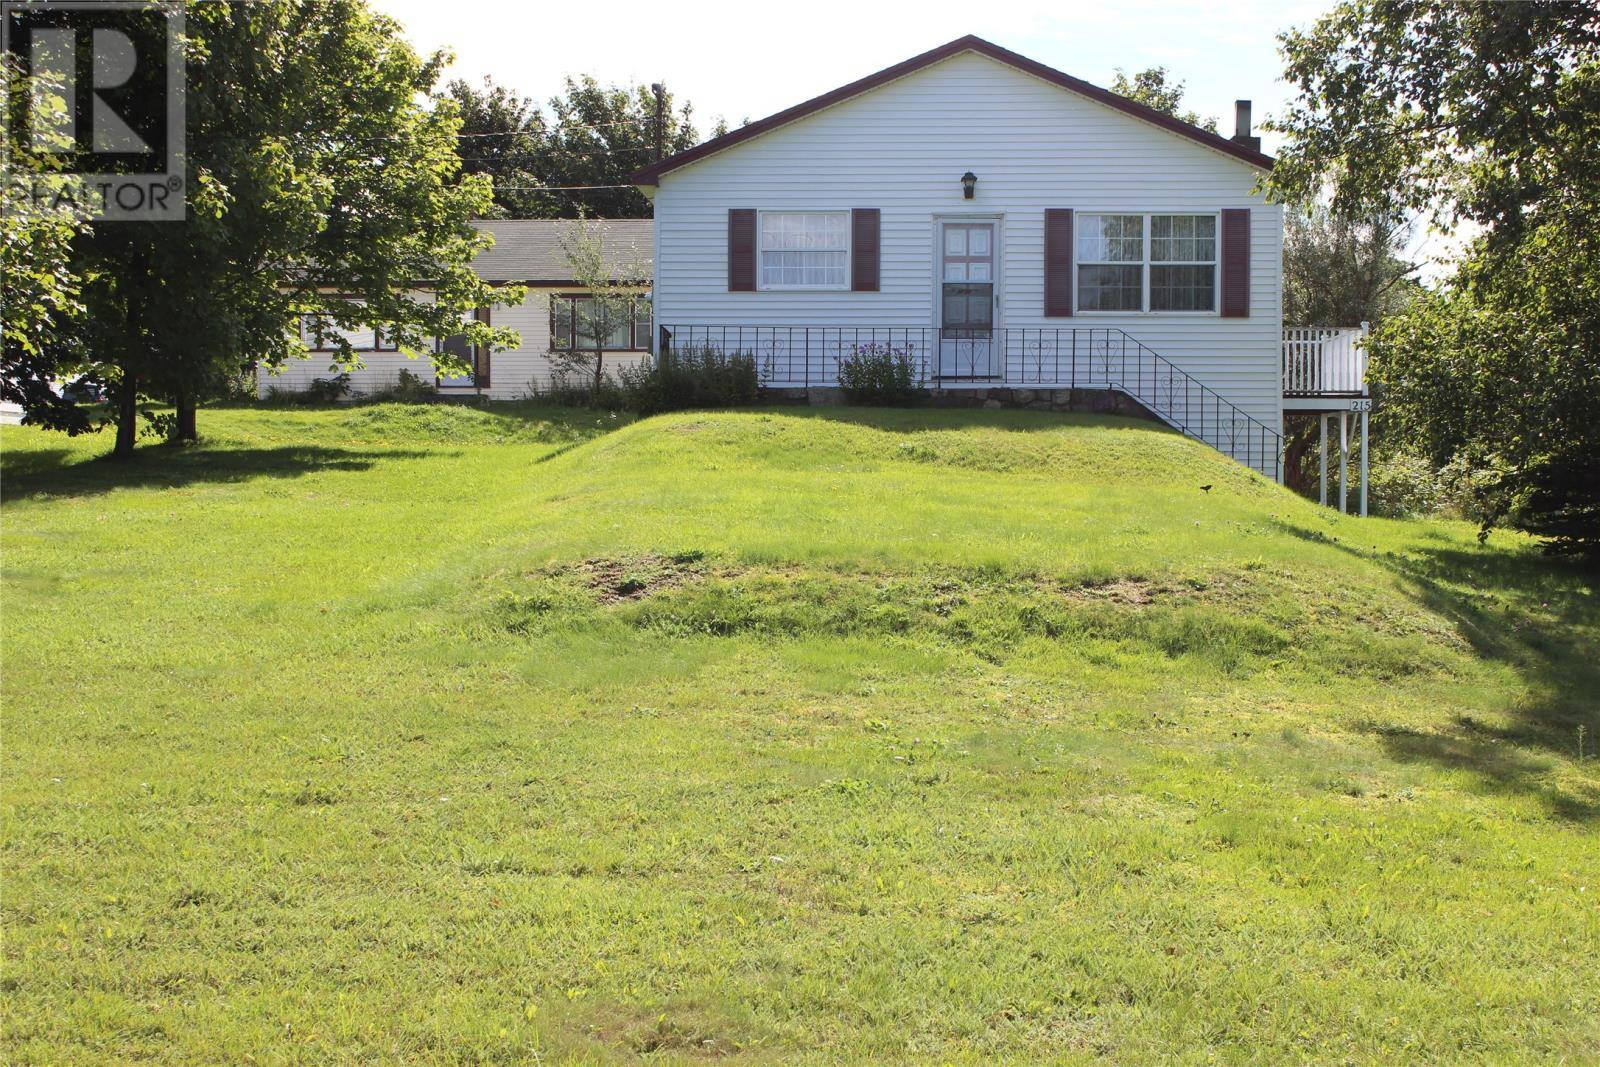 Home for sale at 215 Conception Bay Hy Conception Bay South Newfoundland - MLS: 1211962